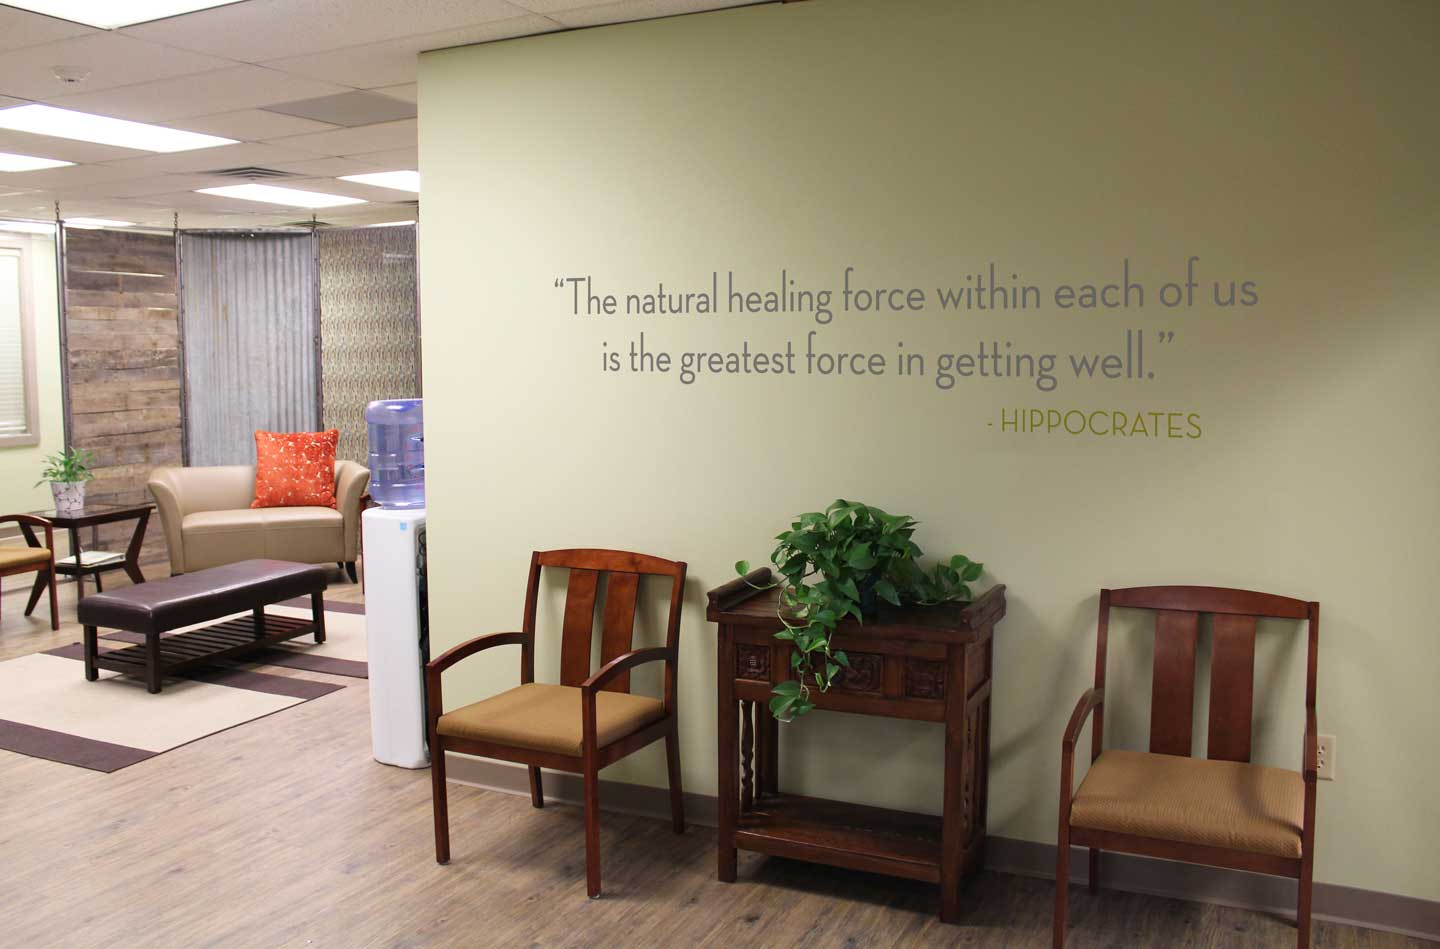 """Wall sign that reads: The natural healing force within each of us is the greatest force in getting well."""" - Hippocrates"""